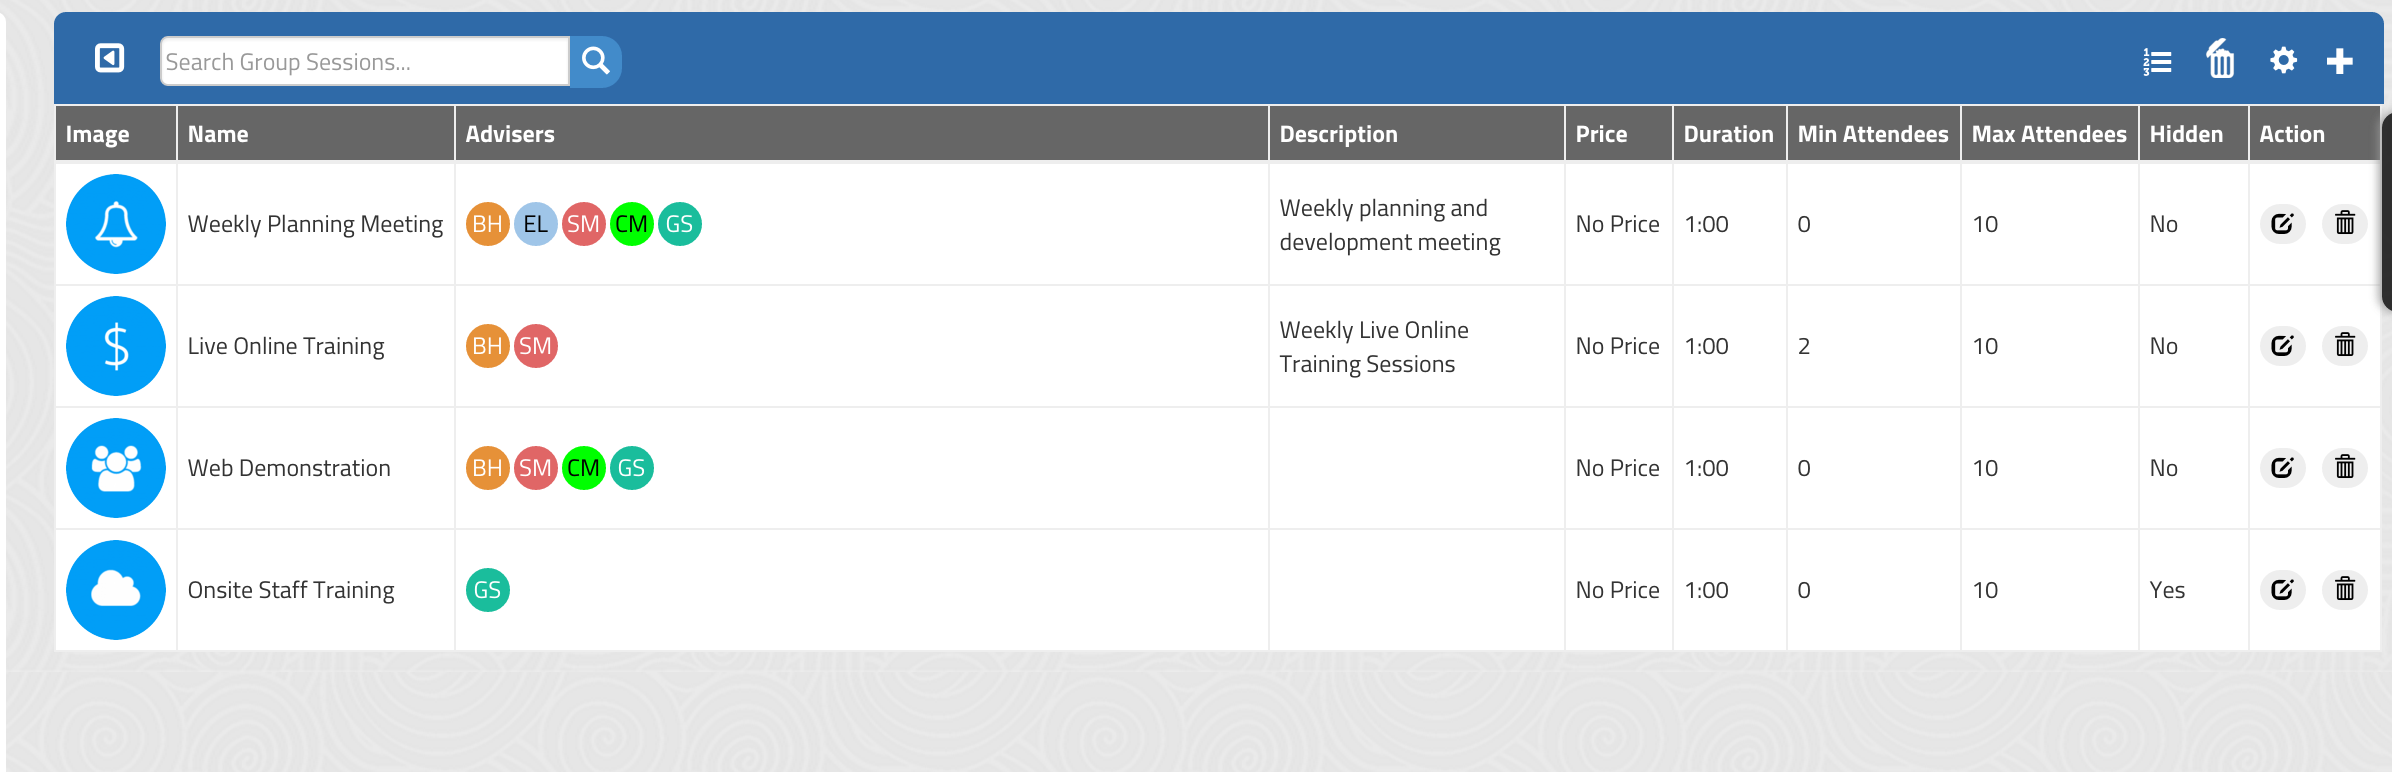 Group Sessions Management Page